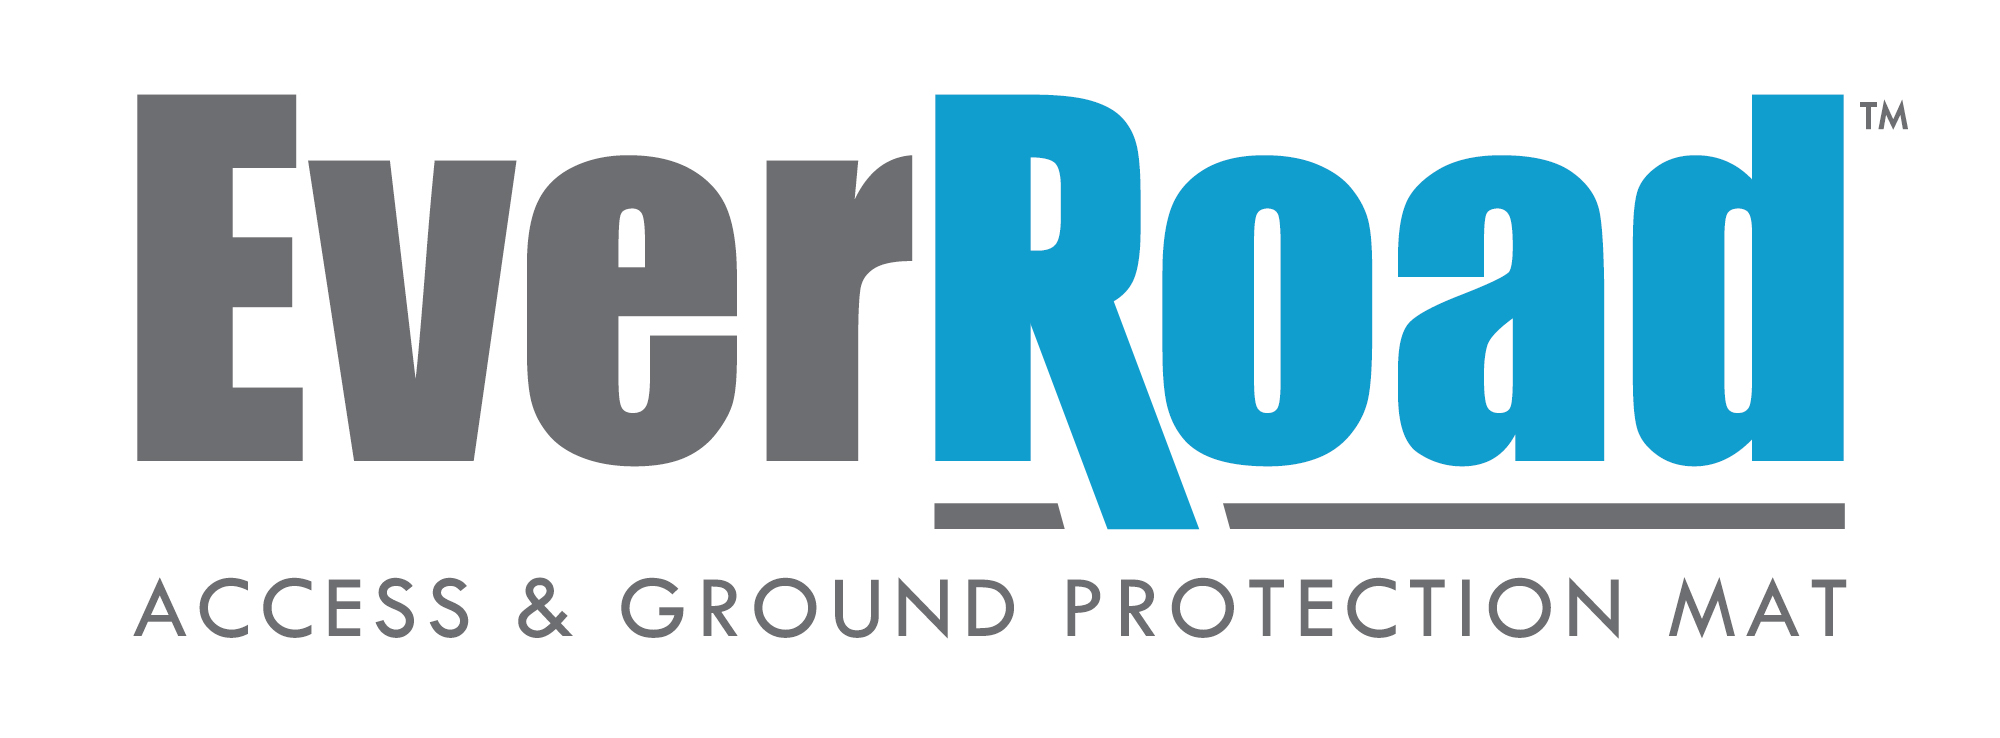 everroad access mats and ground protection mats